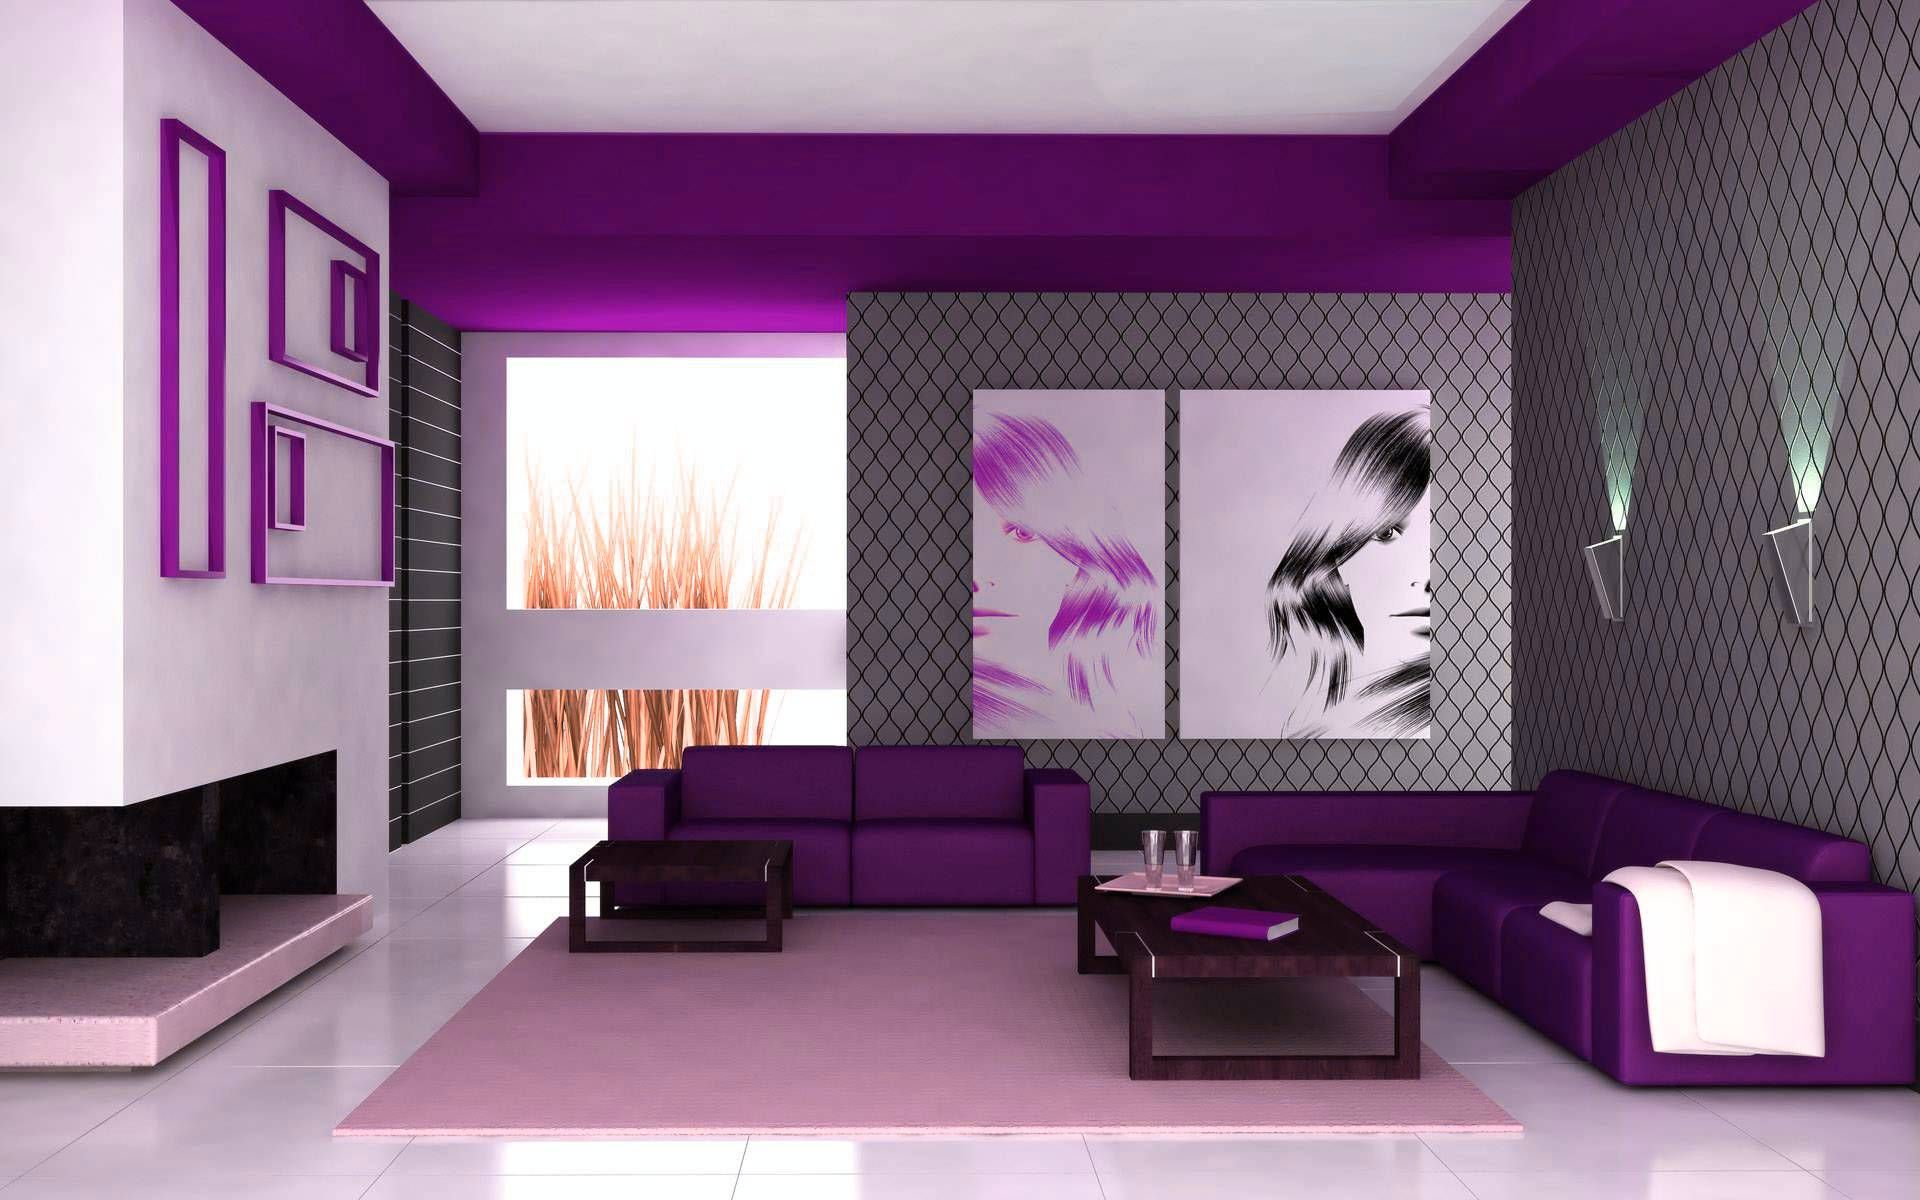 Interior Decor design for own home is real important. creating different styles